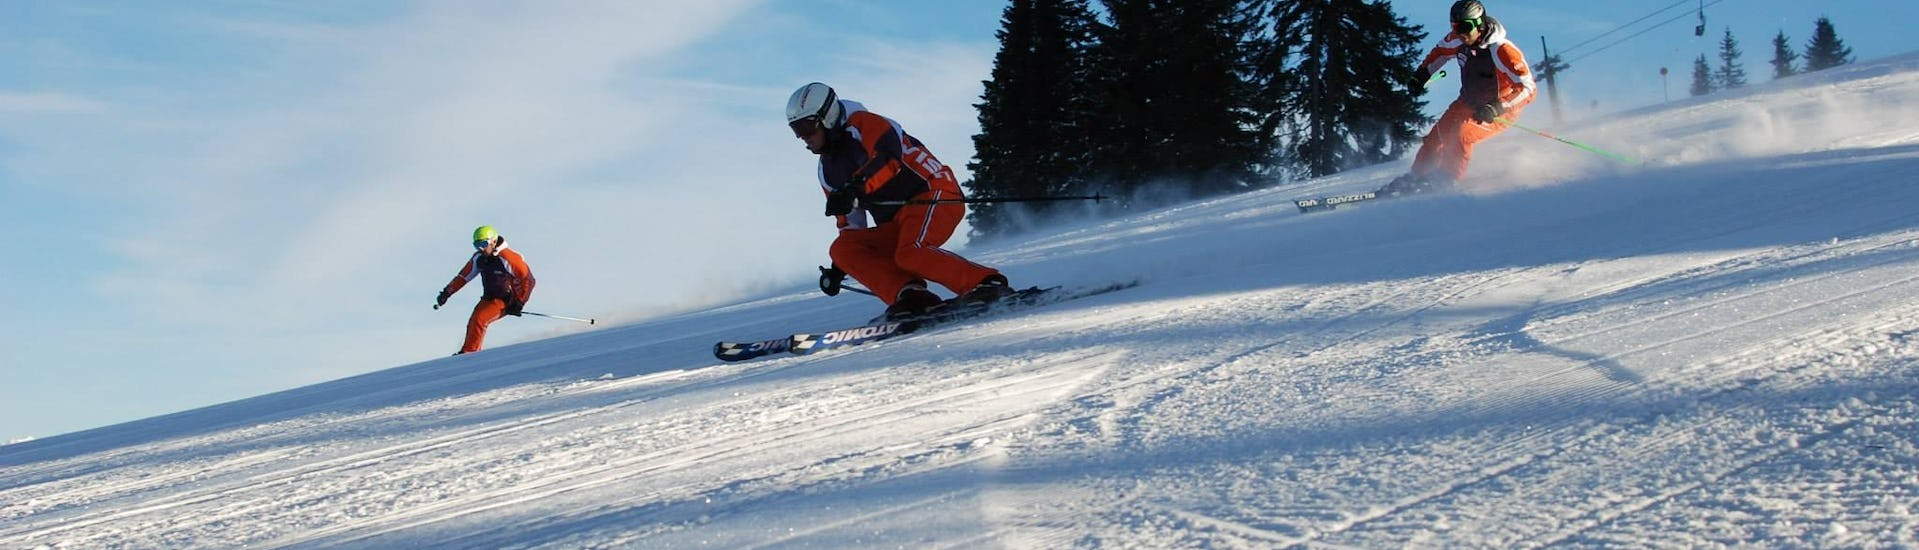 "Ski Lessons ""All-in-One"" for Adults - All Levels"